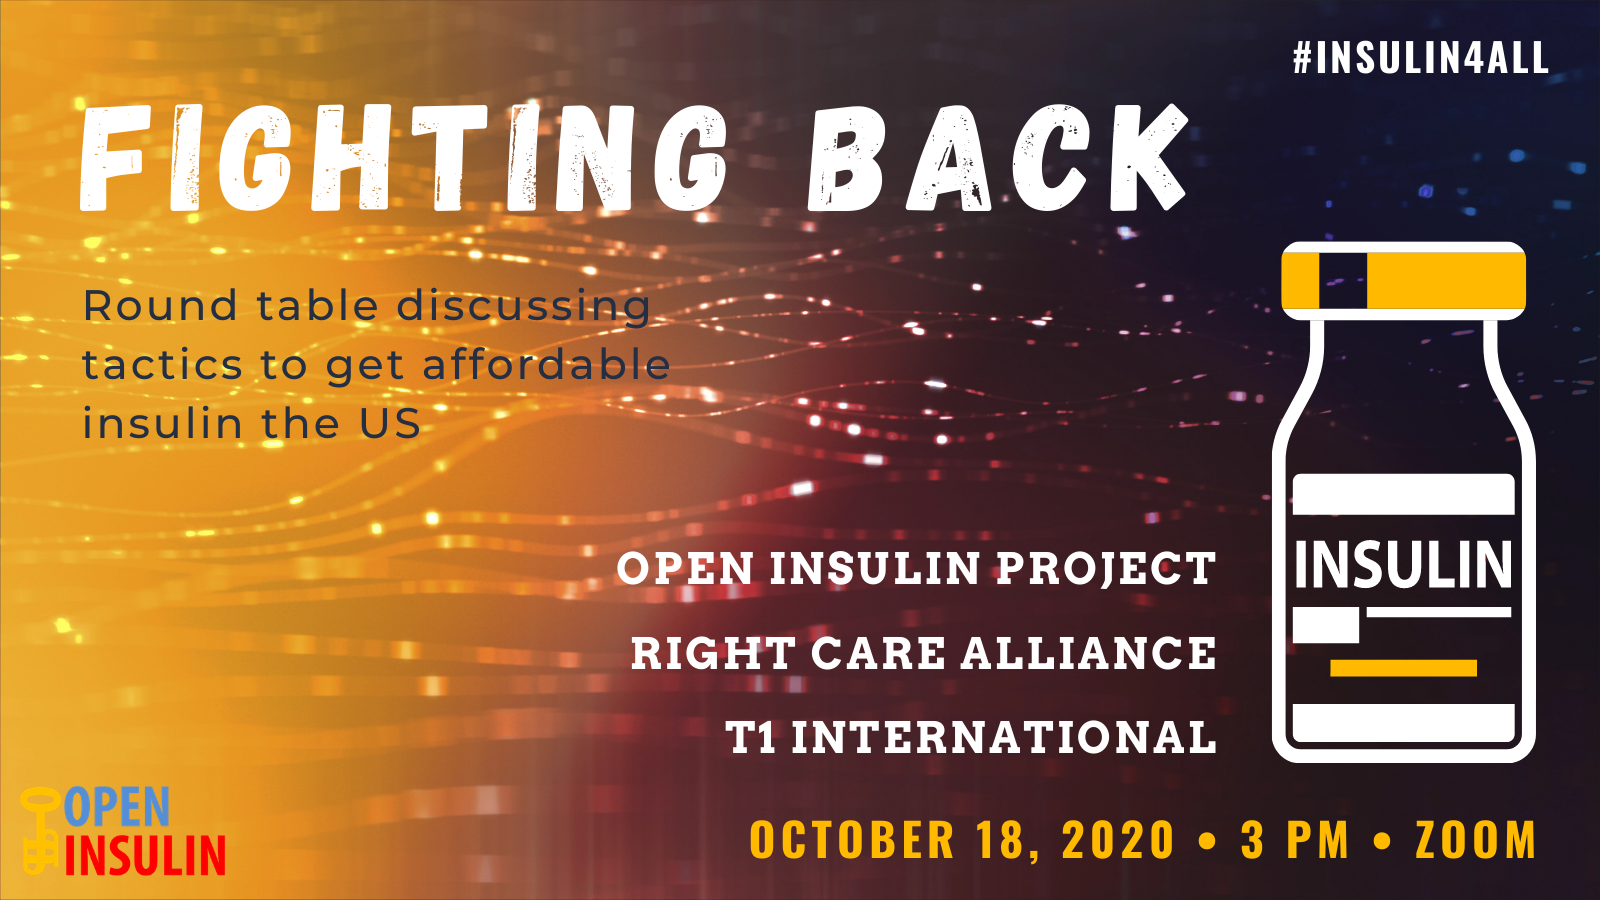 FIGHTING BACK: Round table discussing tactics to get affordable insulin in the US